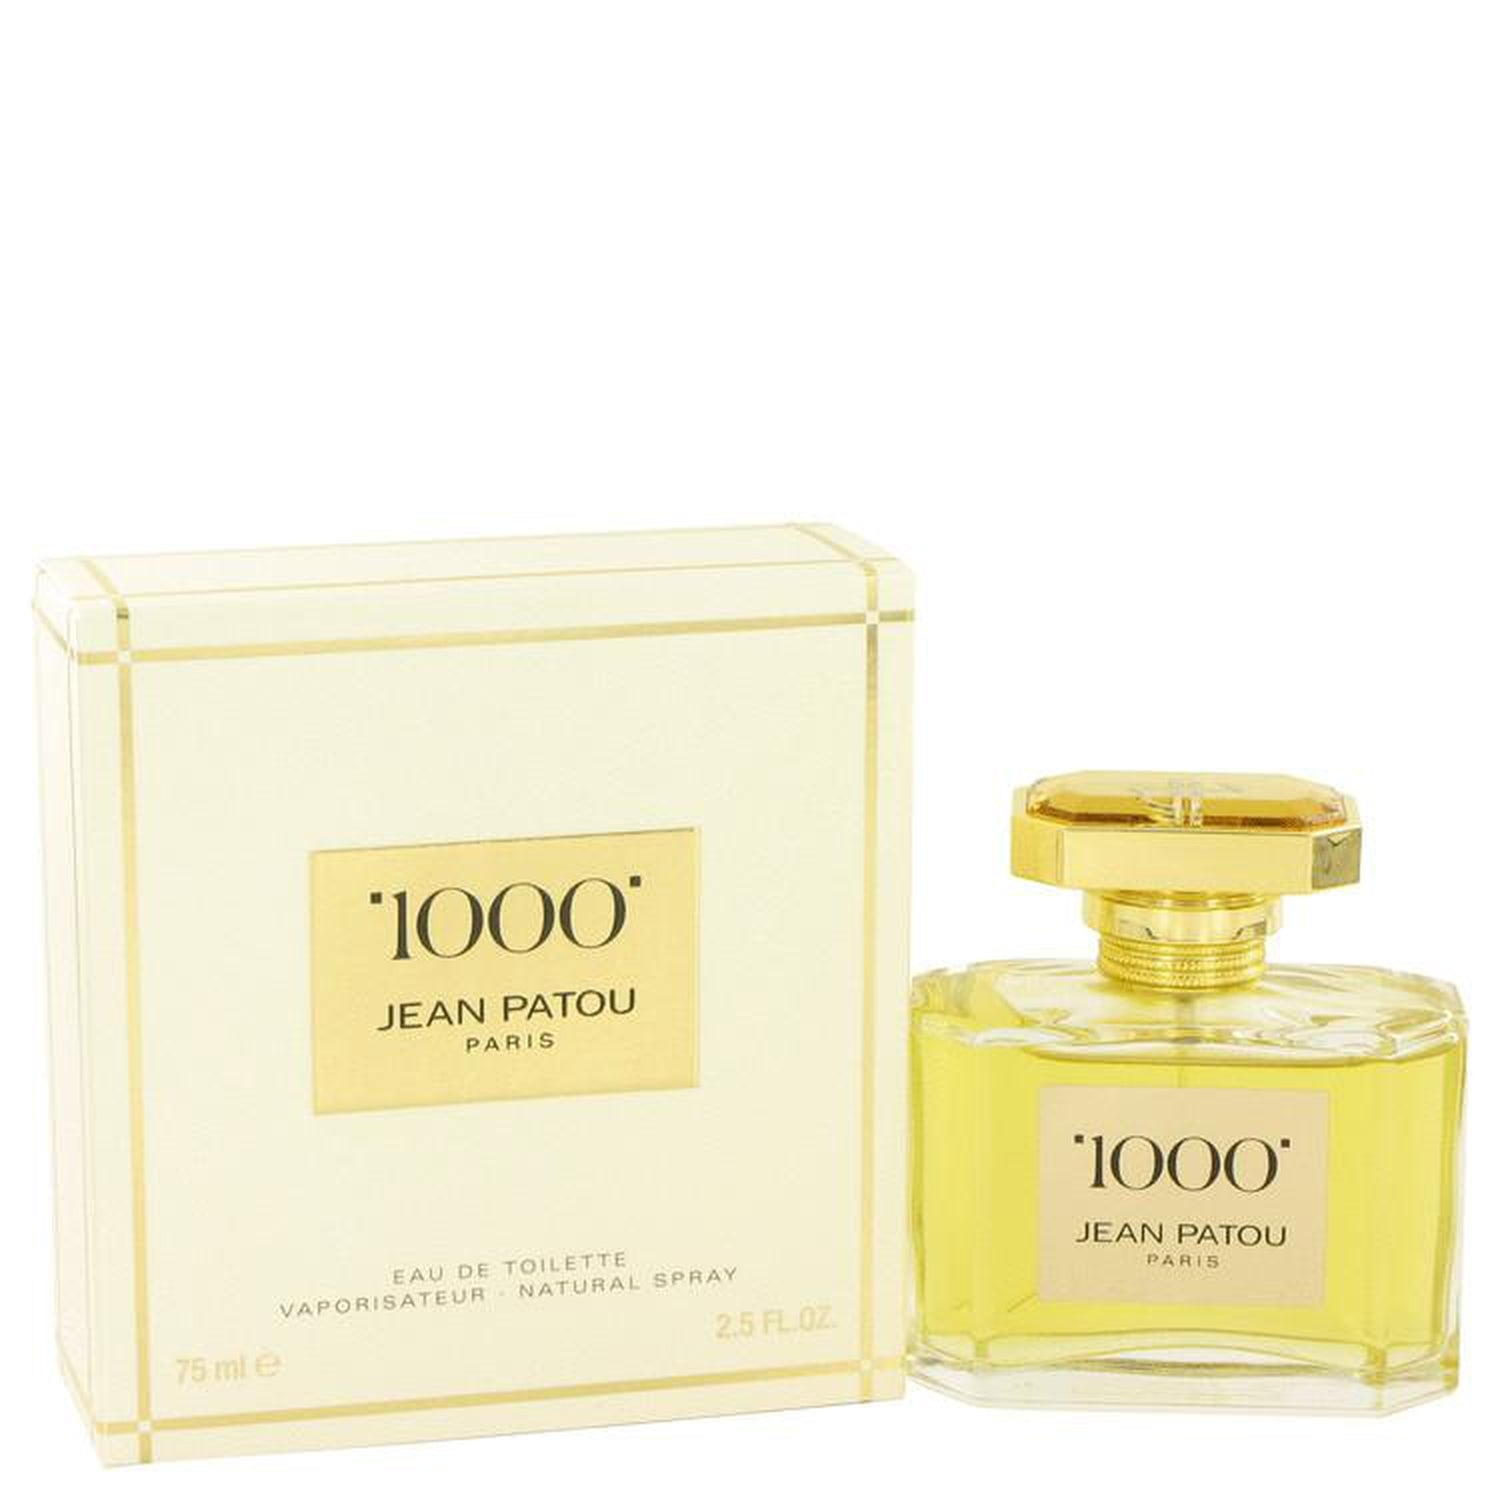 1000 Eau De Toilette Spray By Jean Patou 2.5 oz Eau De Toilette Spray